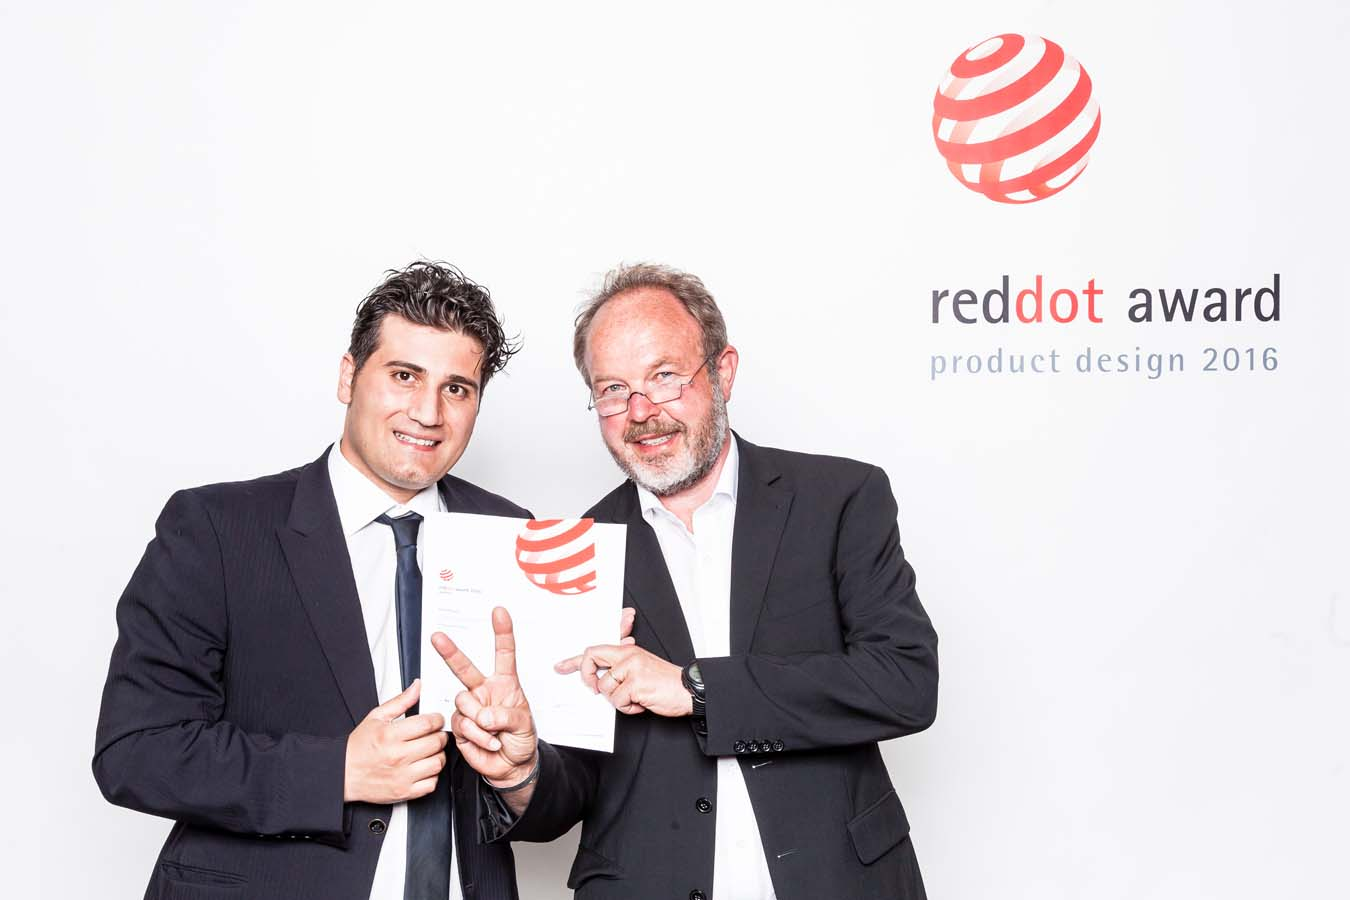 red-dot-design-award-produktdesign-2016-prodesign-hetzenecker